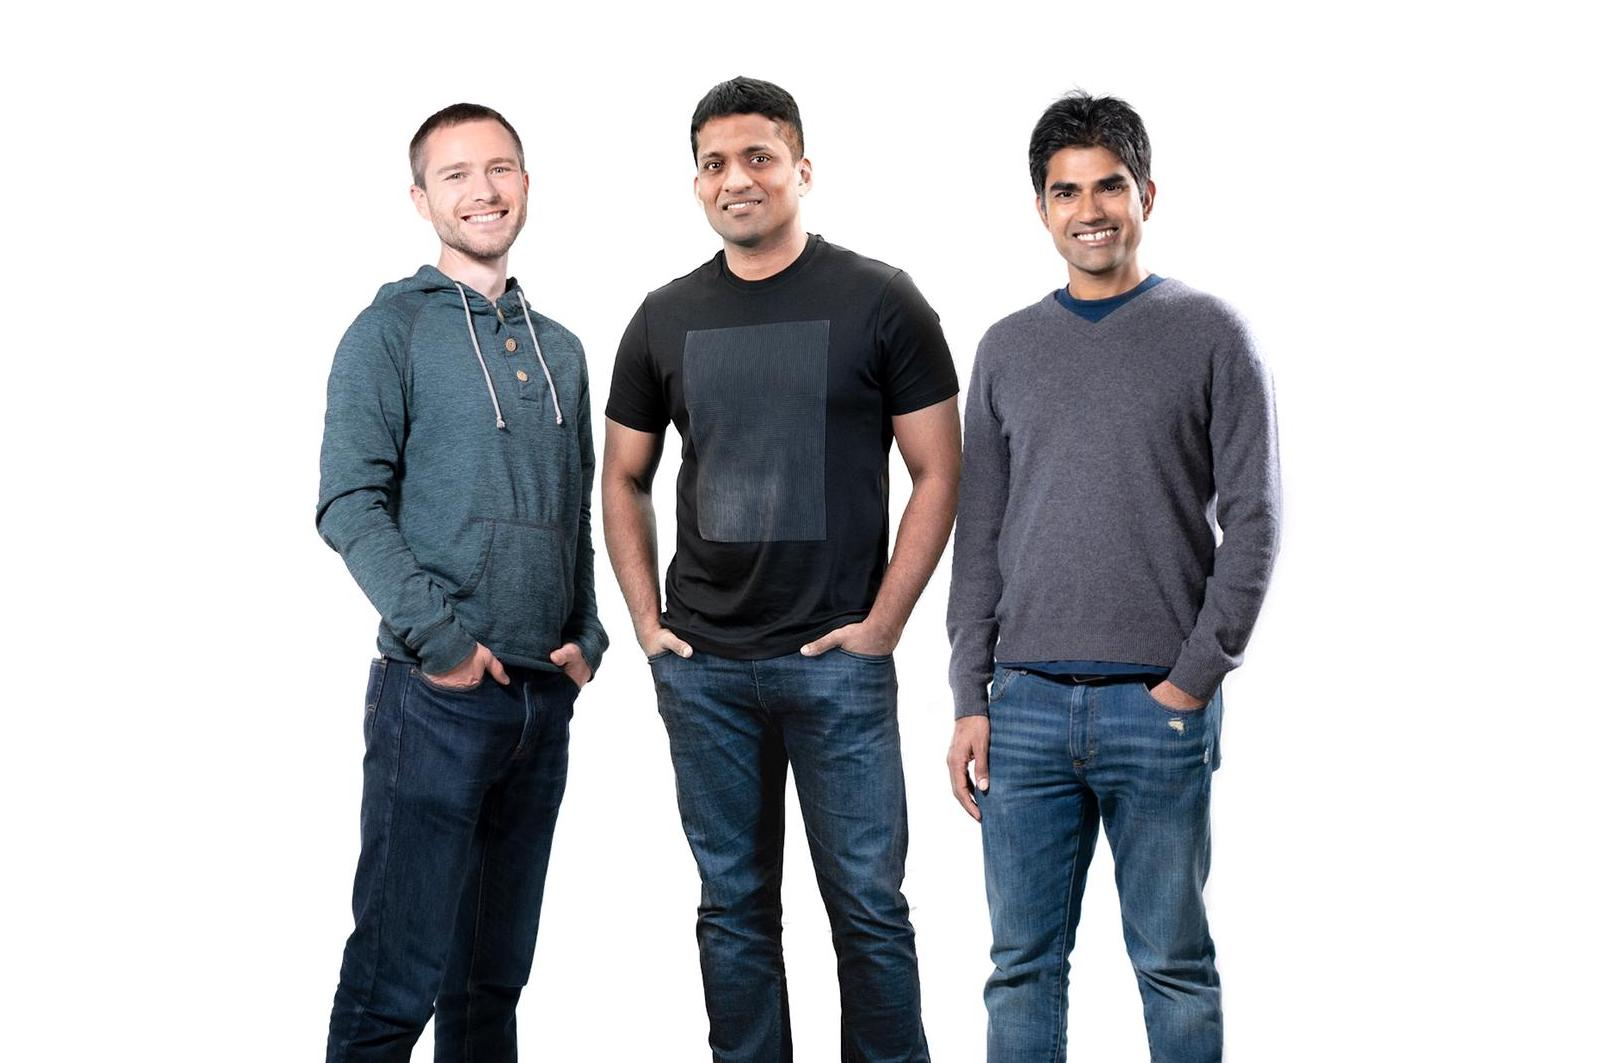 Osmo's and Byju's founders